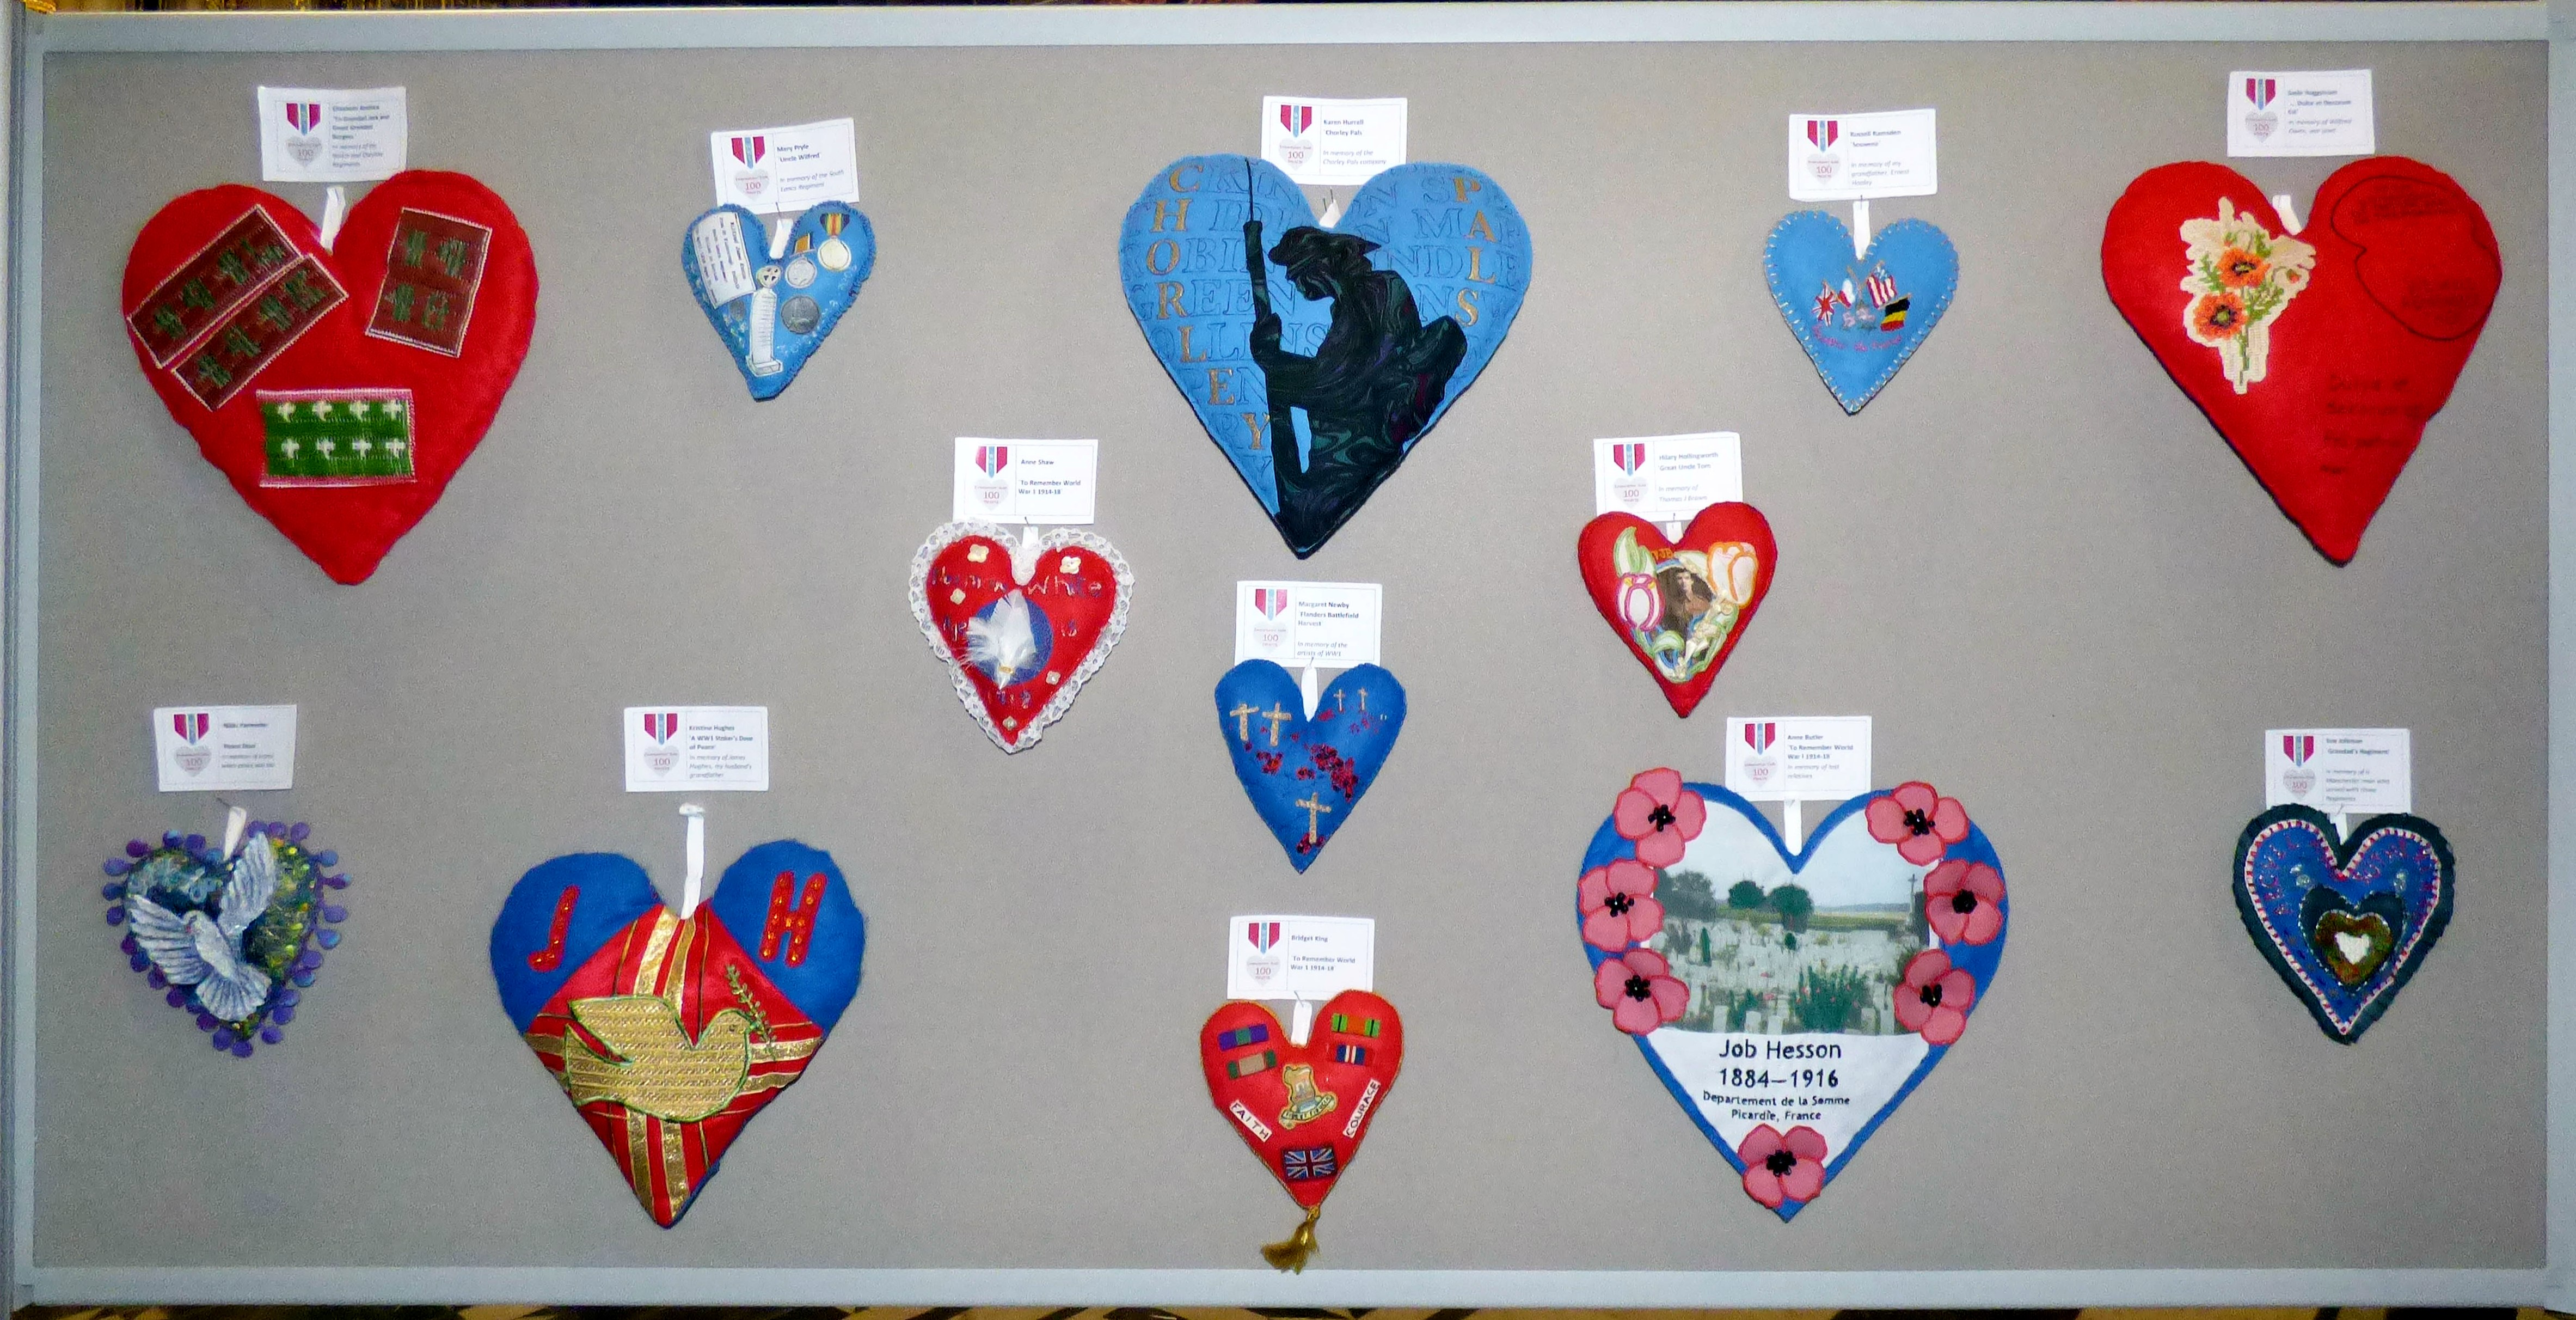 100 Hearts exhibition, Liverpool cathedral,Sept 2018